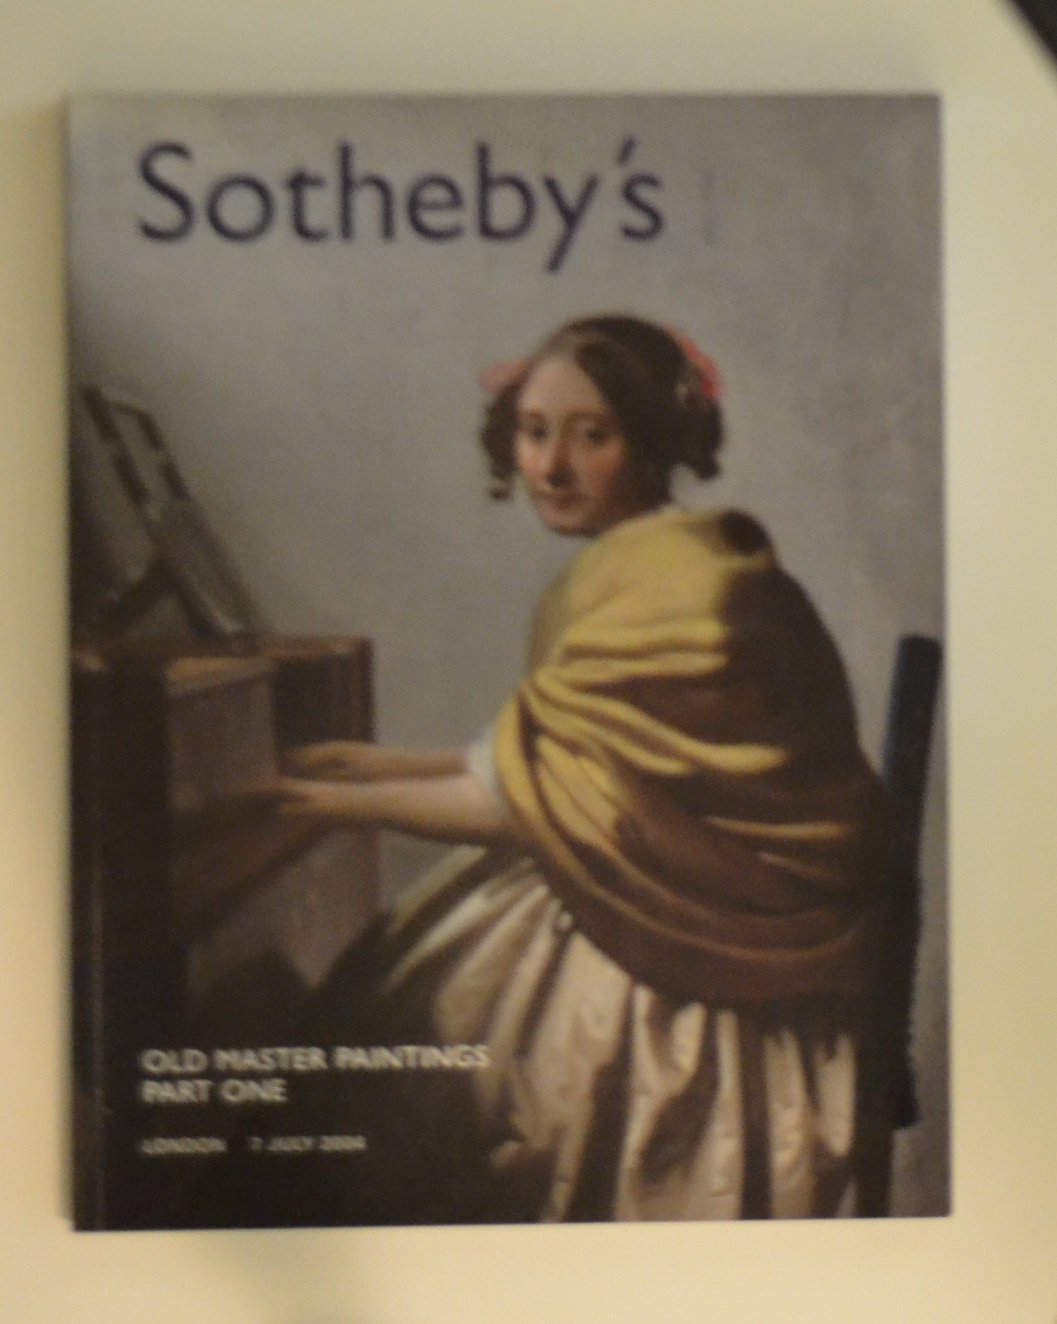 b307 Sotheby's Auction / Old Master Paintings, Part One / London 2004